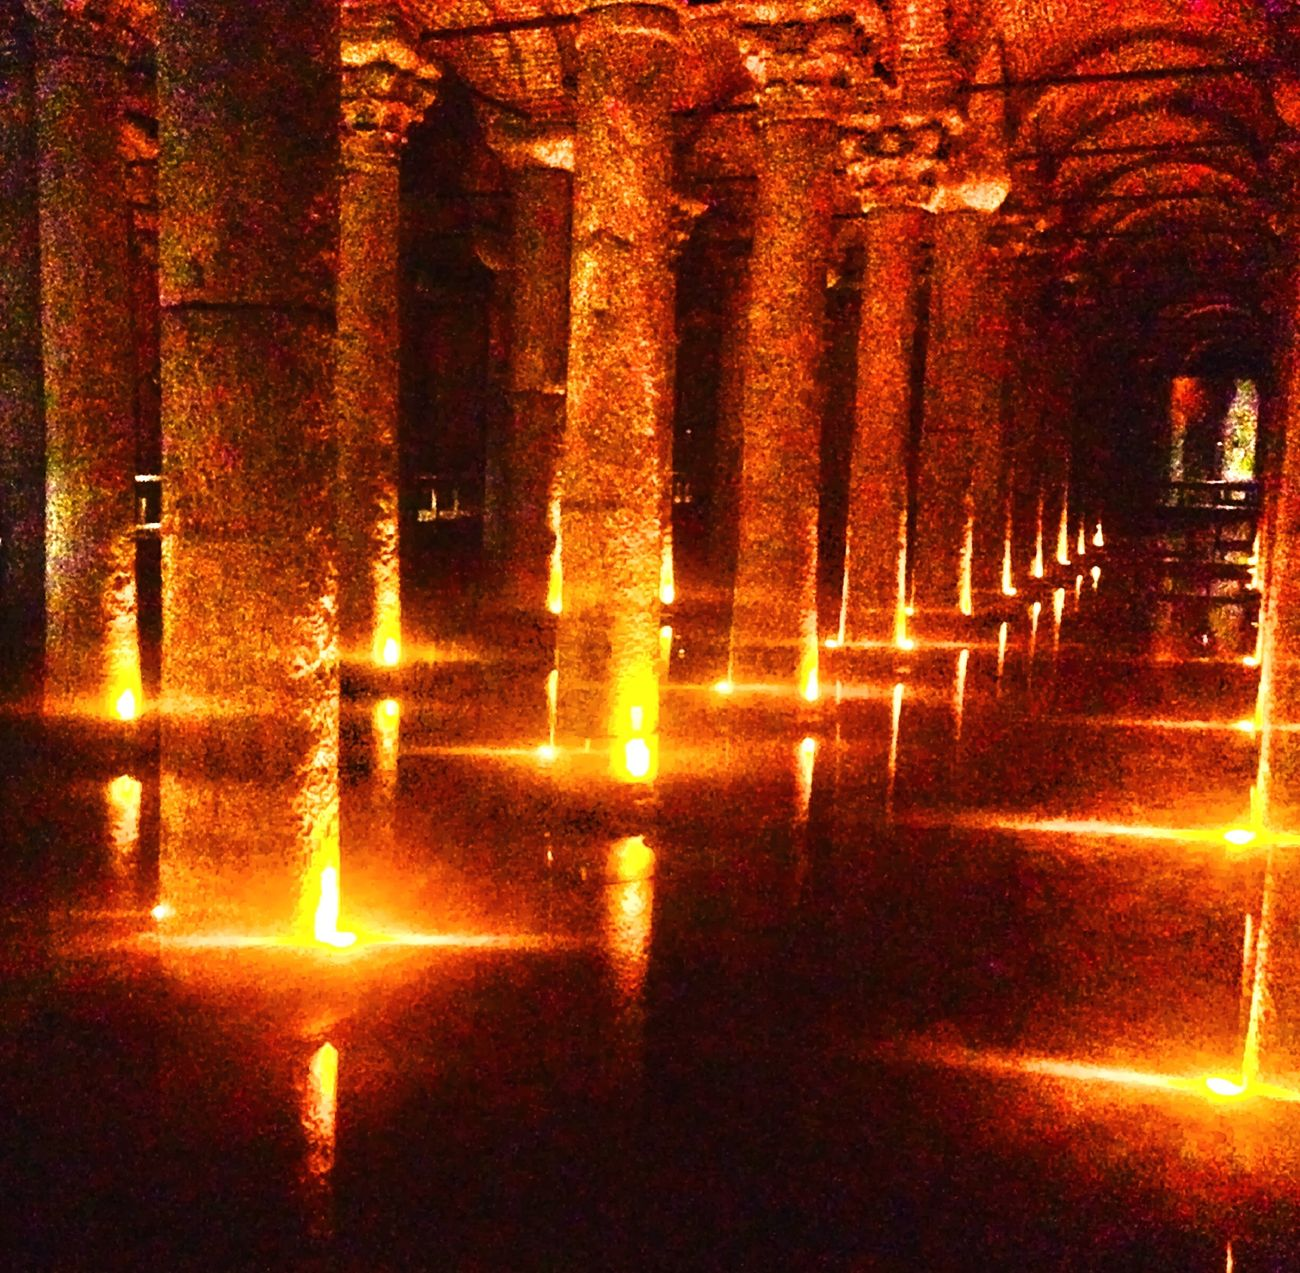 Istanbul YerebatanSarnici EyeEm Best Shots Yerebatan Sarnıcı Basilika Cistern Basilikacistern Istanbuldayasam Istanbul City Alemdar Gemisi Cisterna Basilica Symmetryporn Yerebatan Yerebatansarayi Yerebatansarnıcı Yerebatansarnıcı Istanbul Turkey Yerebatancistern Magic Light In The Darkness